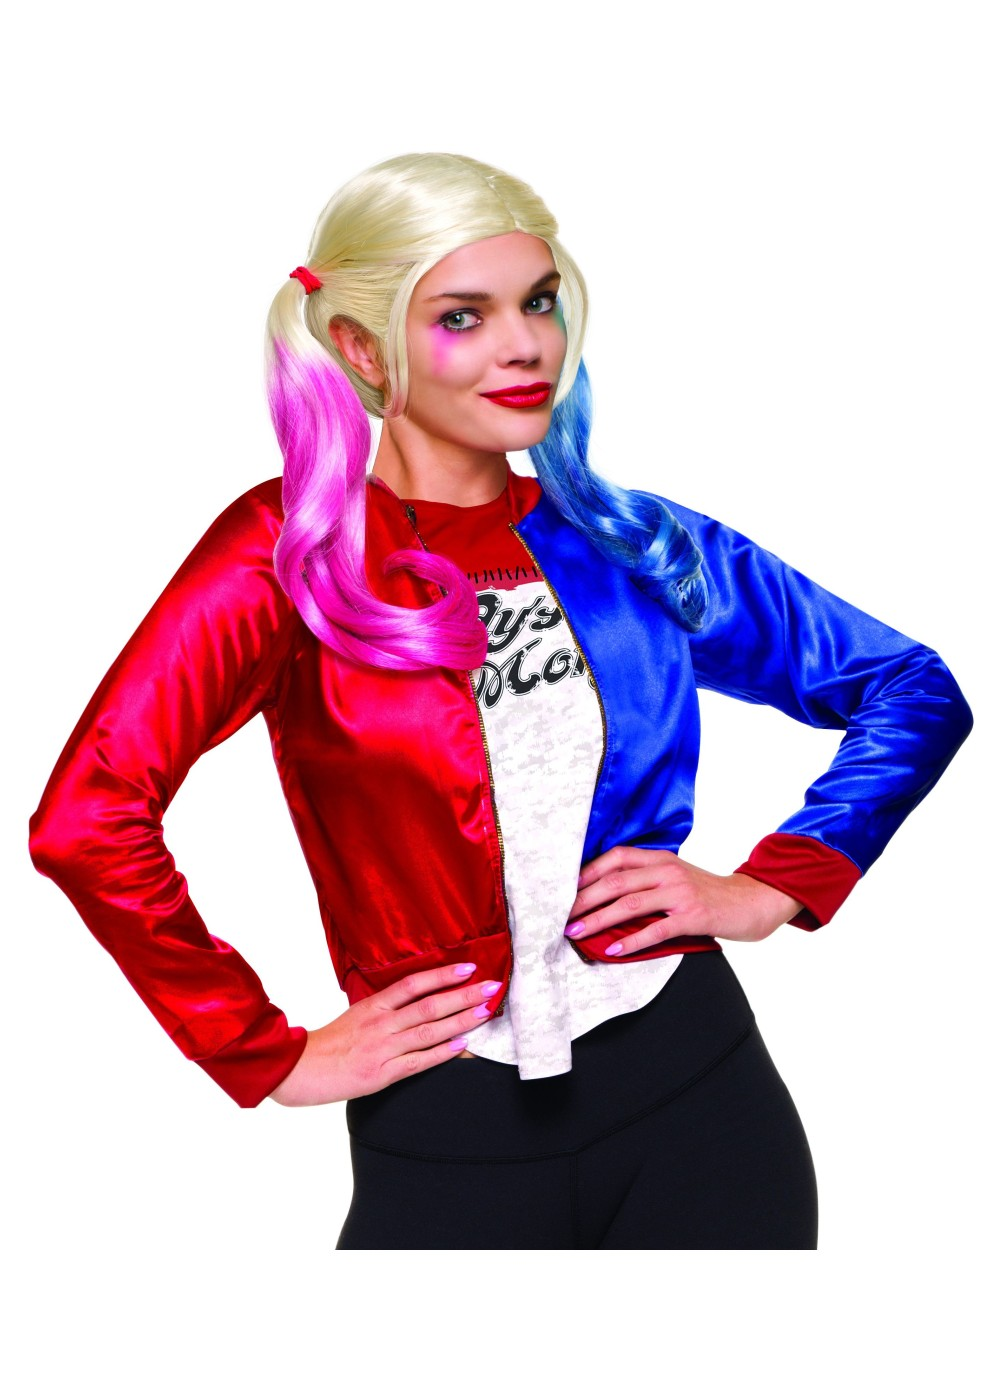 fcb66dade355 Suicide Squad Harley Quinn Teen Girls Costume - Movie Costumes